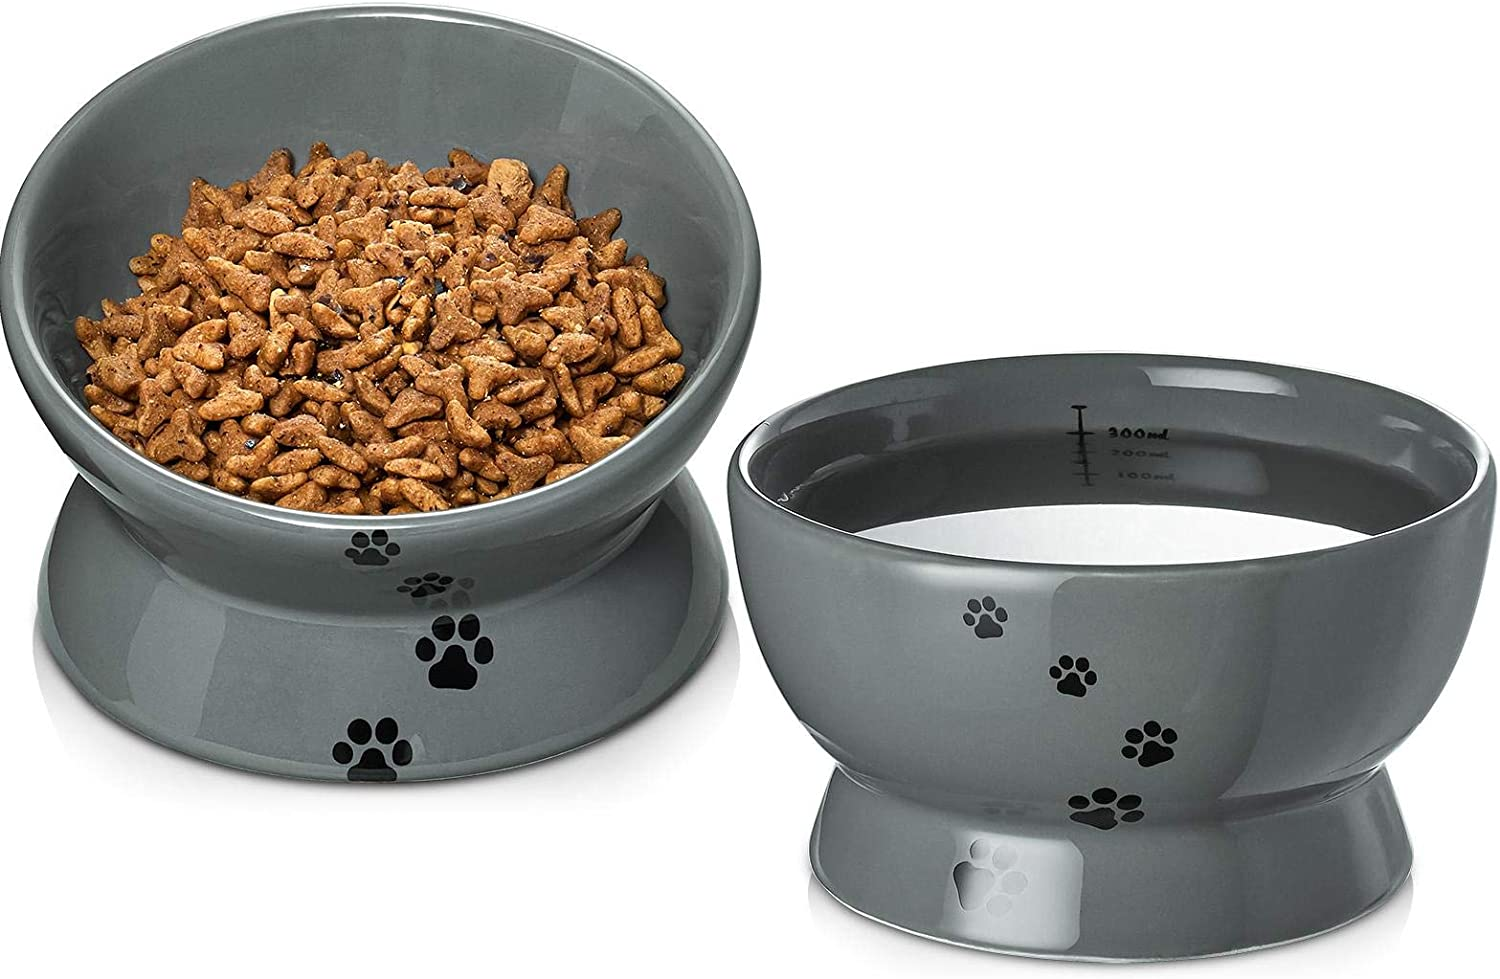 Y YHY Raised Cat Food and Water Bowl Set, Tilted Elevated Cat Food Bowls Anti Vomiting, Ceramic Cat Food Feeder Bowl Collection, Pet Bowl for Flat-Faced Cats and Small Dogs, Set of 2, Grey